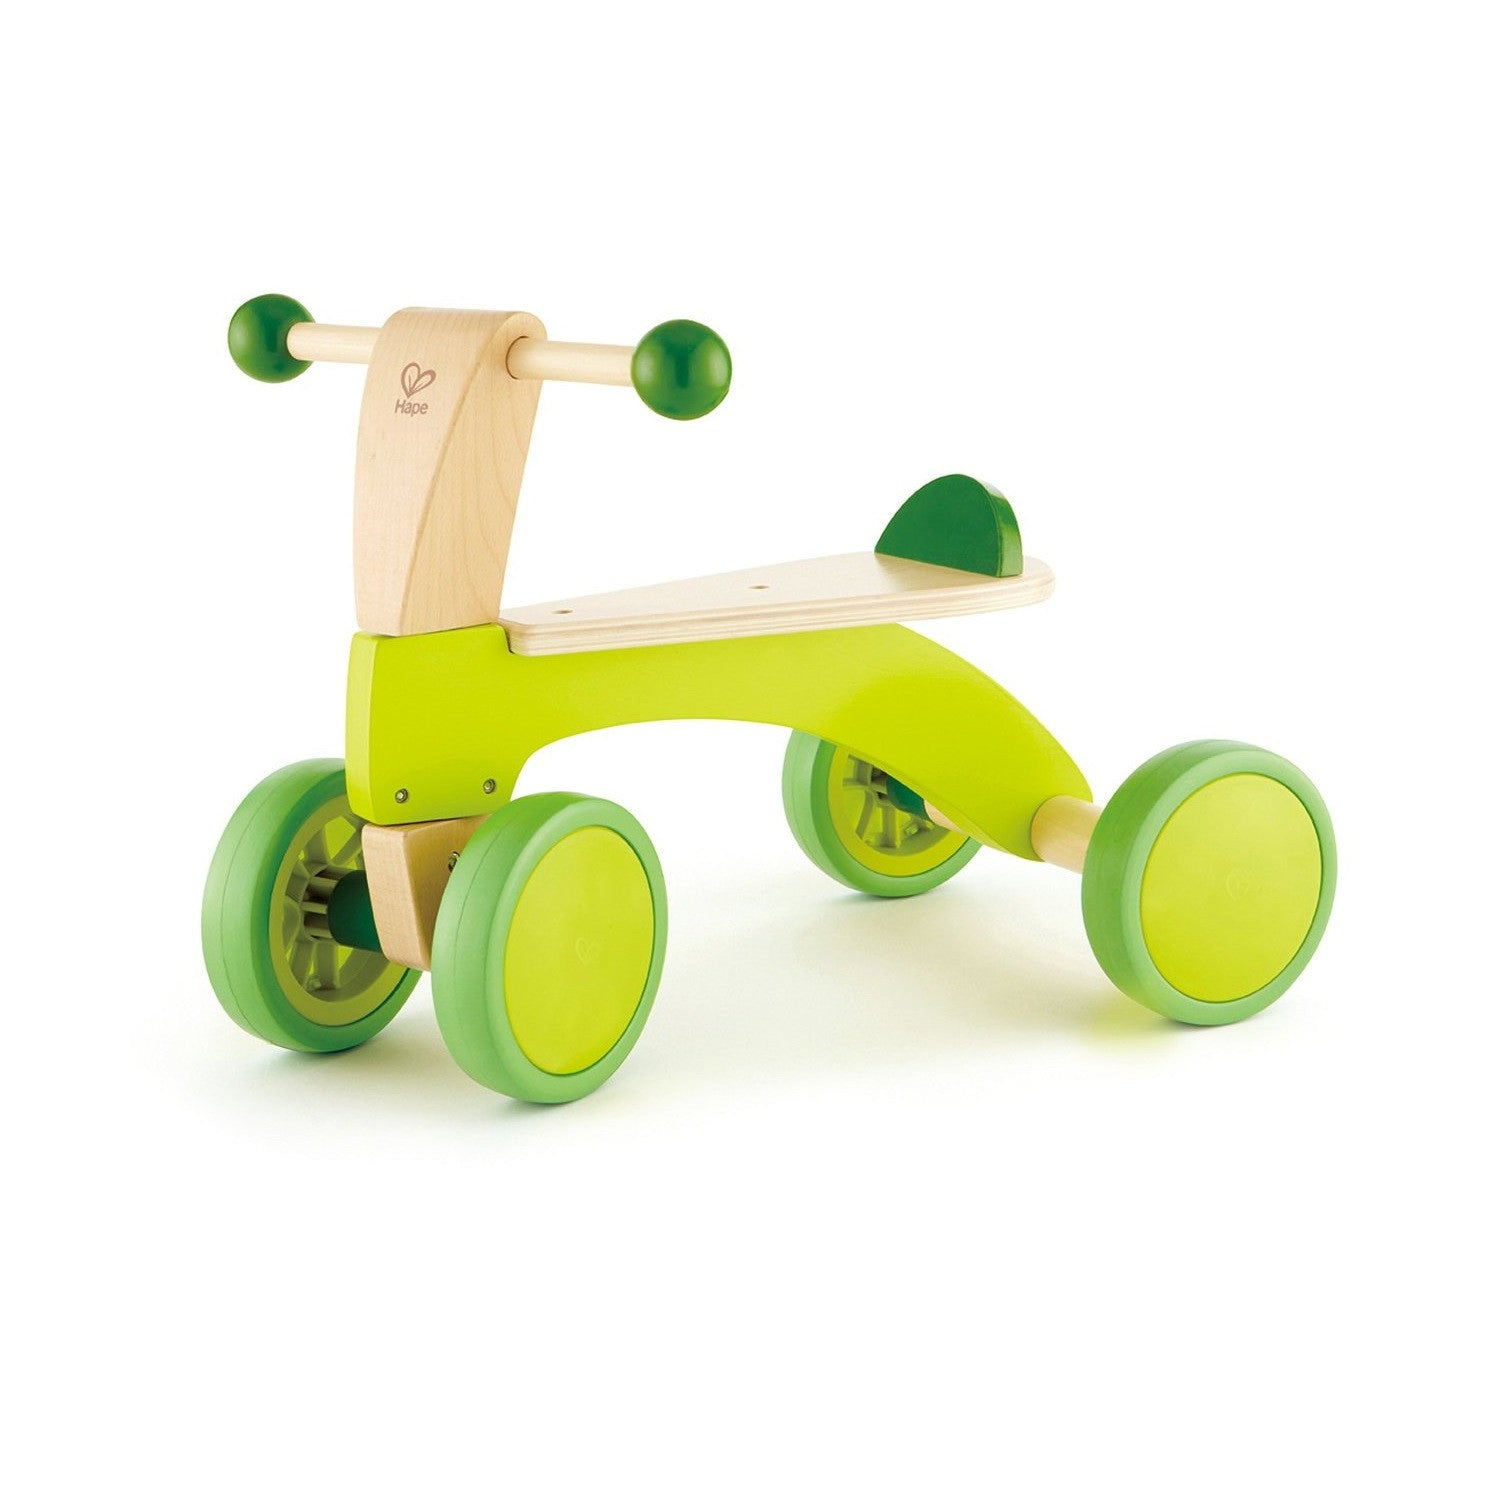 Hape - Scoot-Around - Toybox Toy Jungle